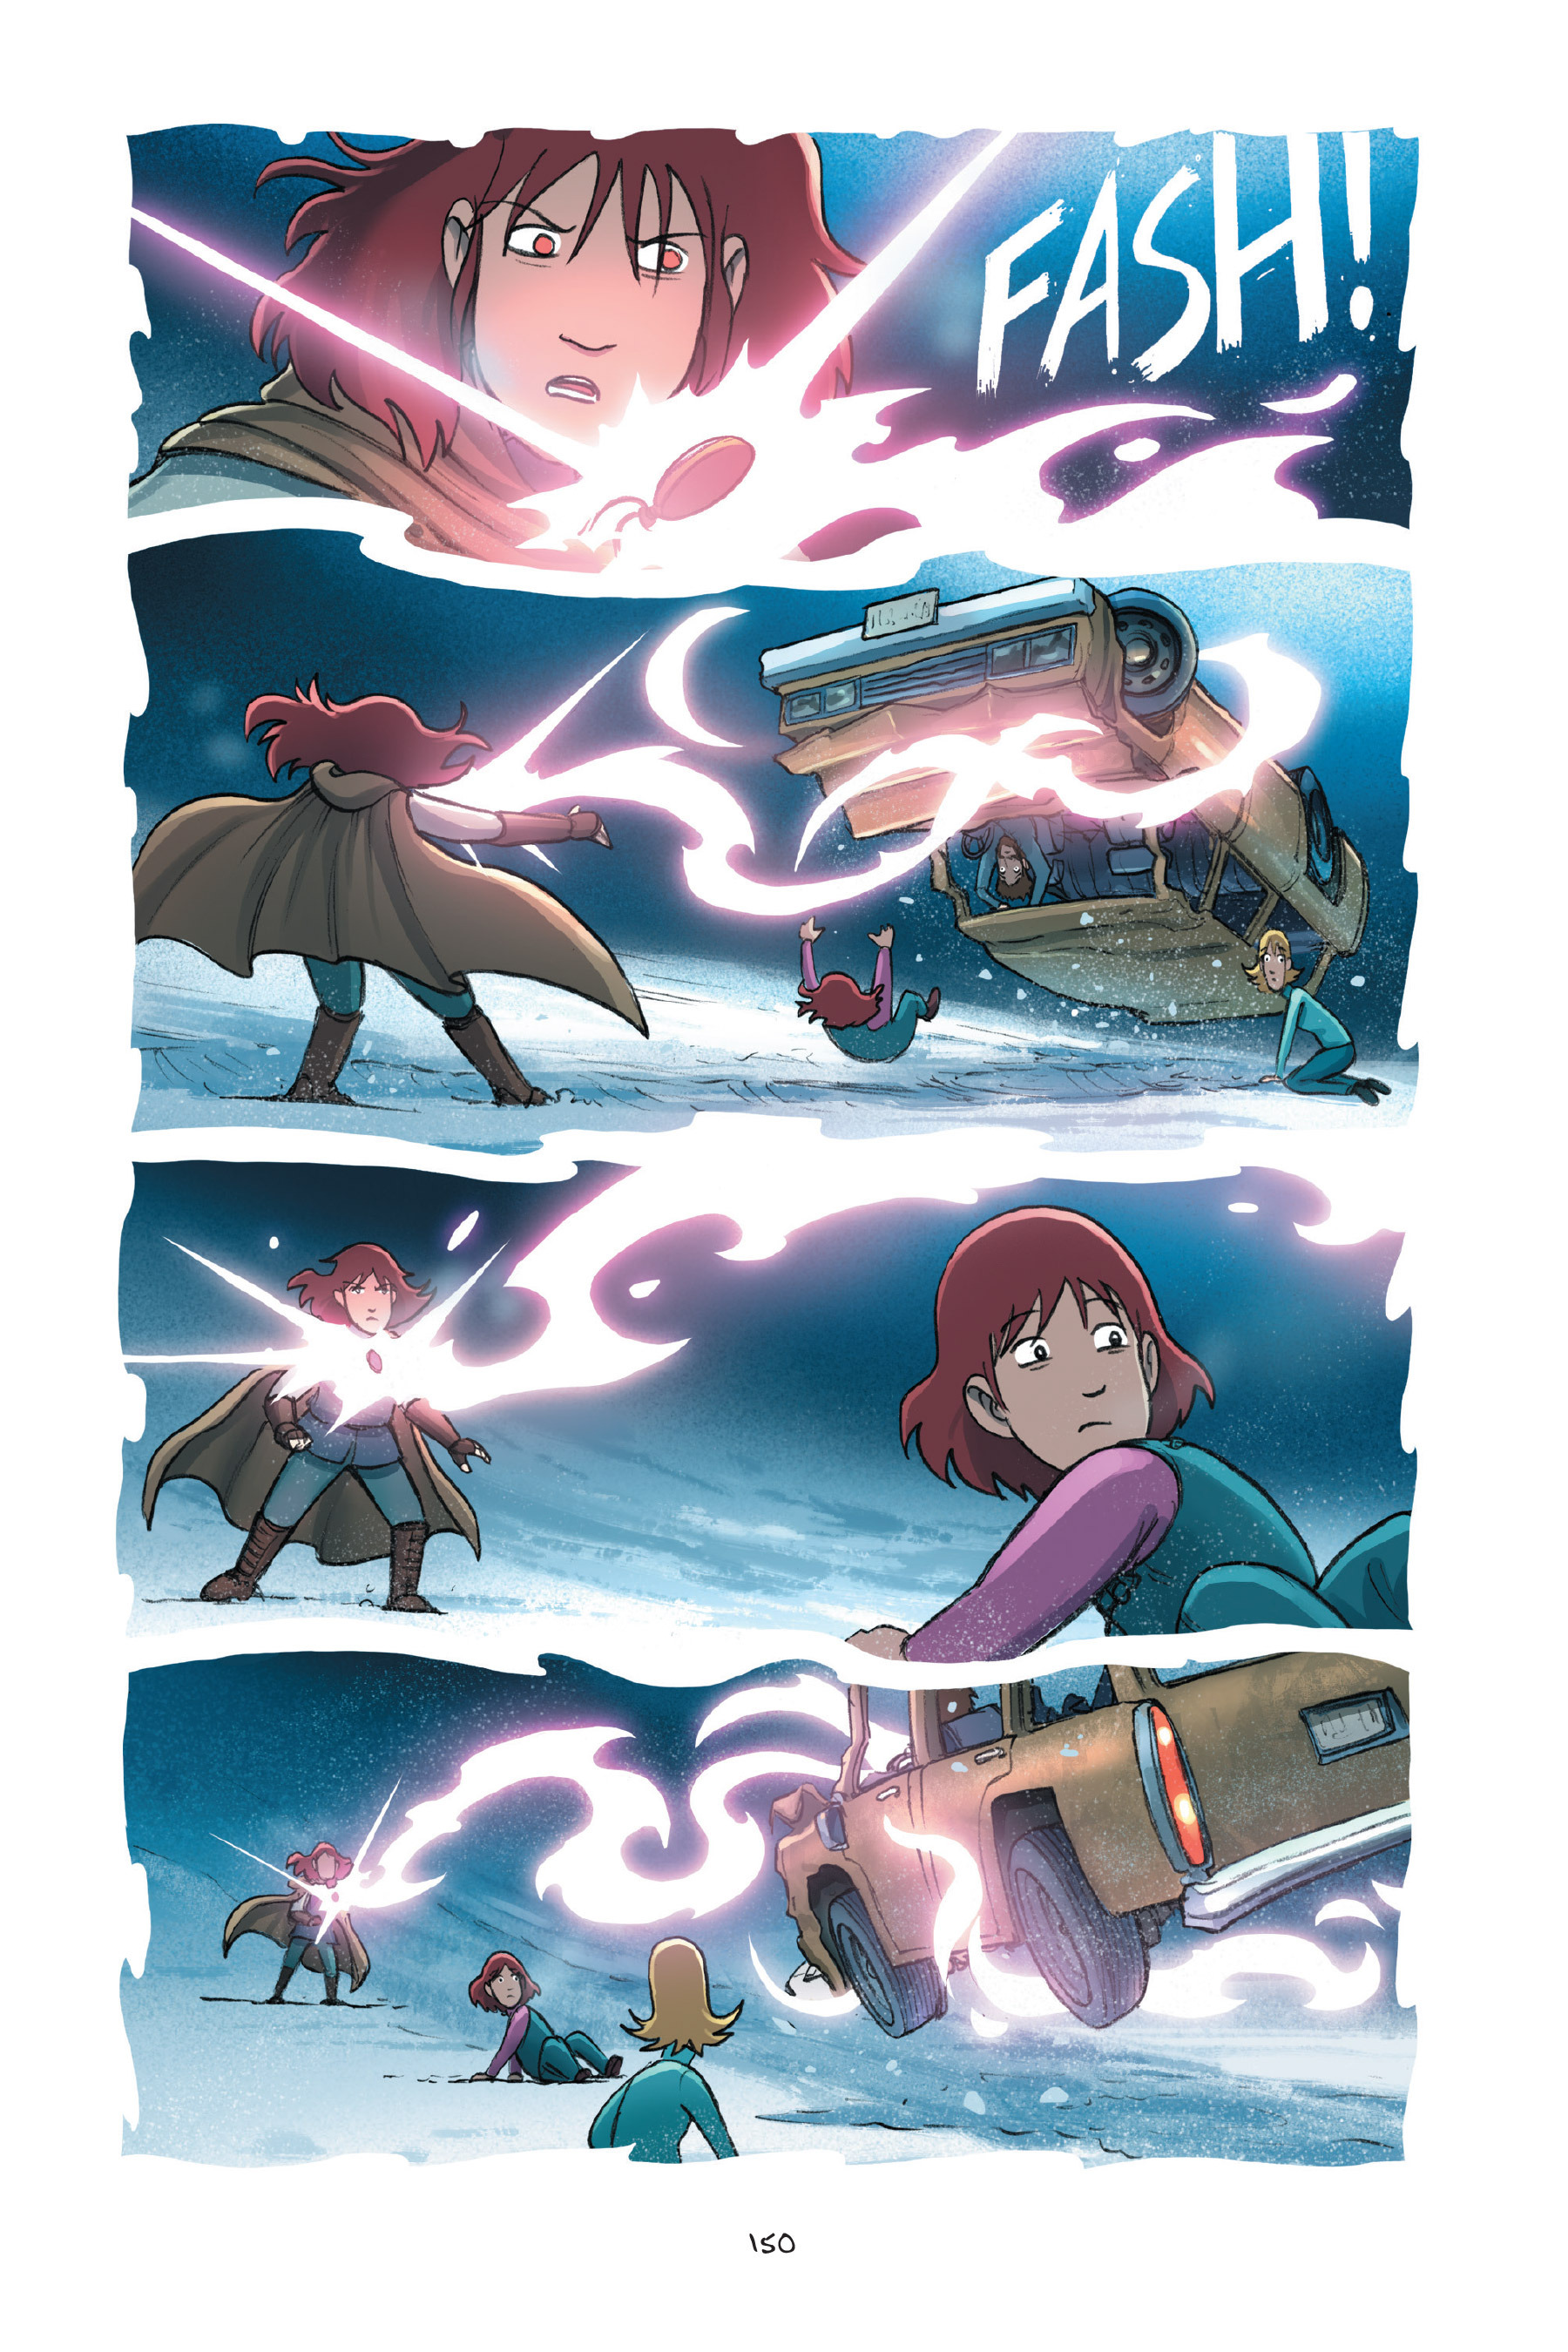 Read online Amulet comic -  Issue #7 - 150